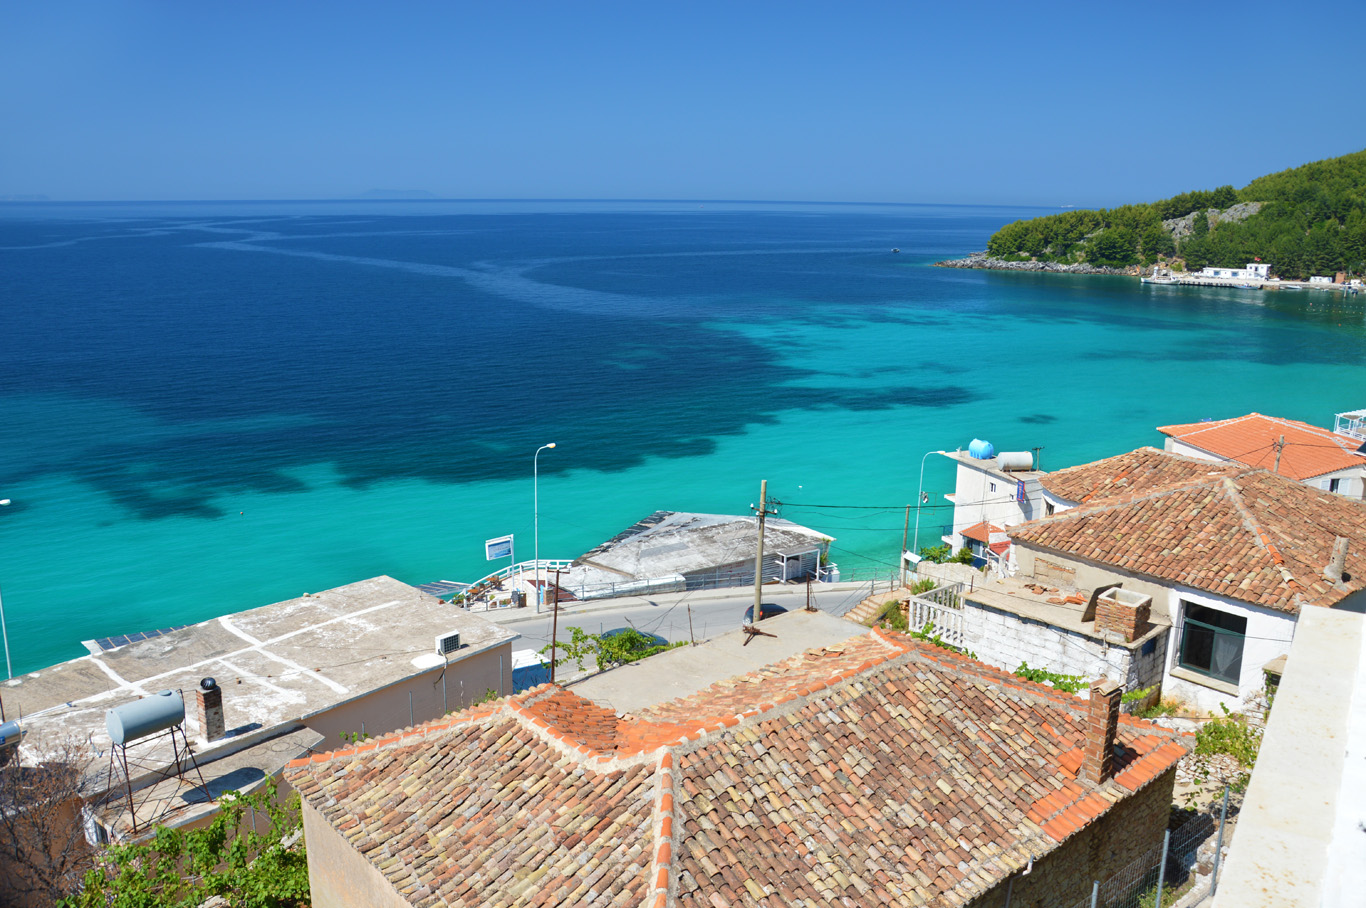 Himare - new town